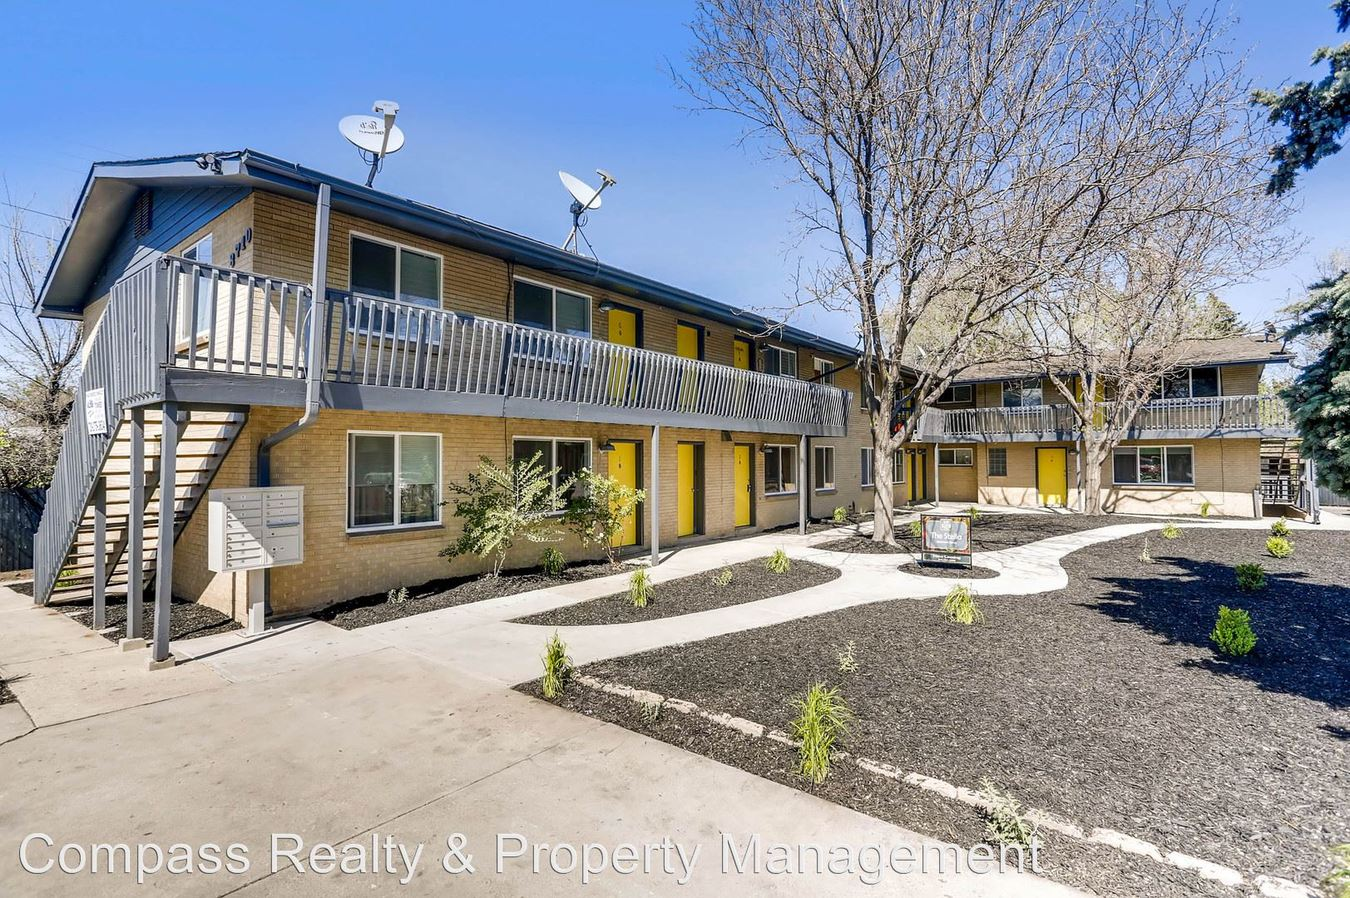 2 Bedrooms 1 Bathroom Apartment for rent at 3710 Upham St in Wheat Ridge, CO